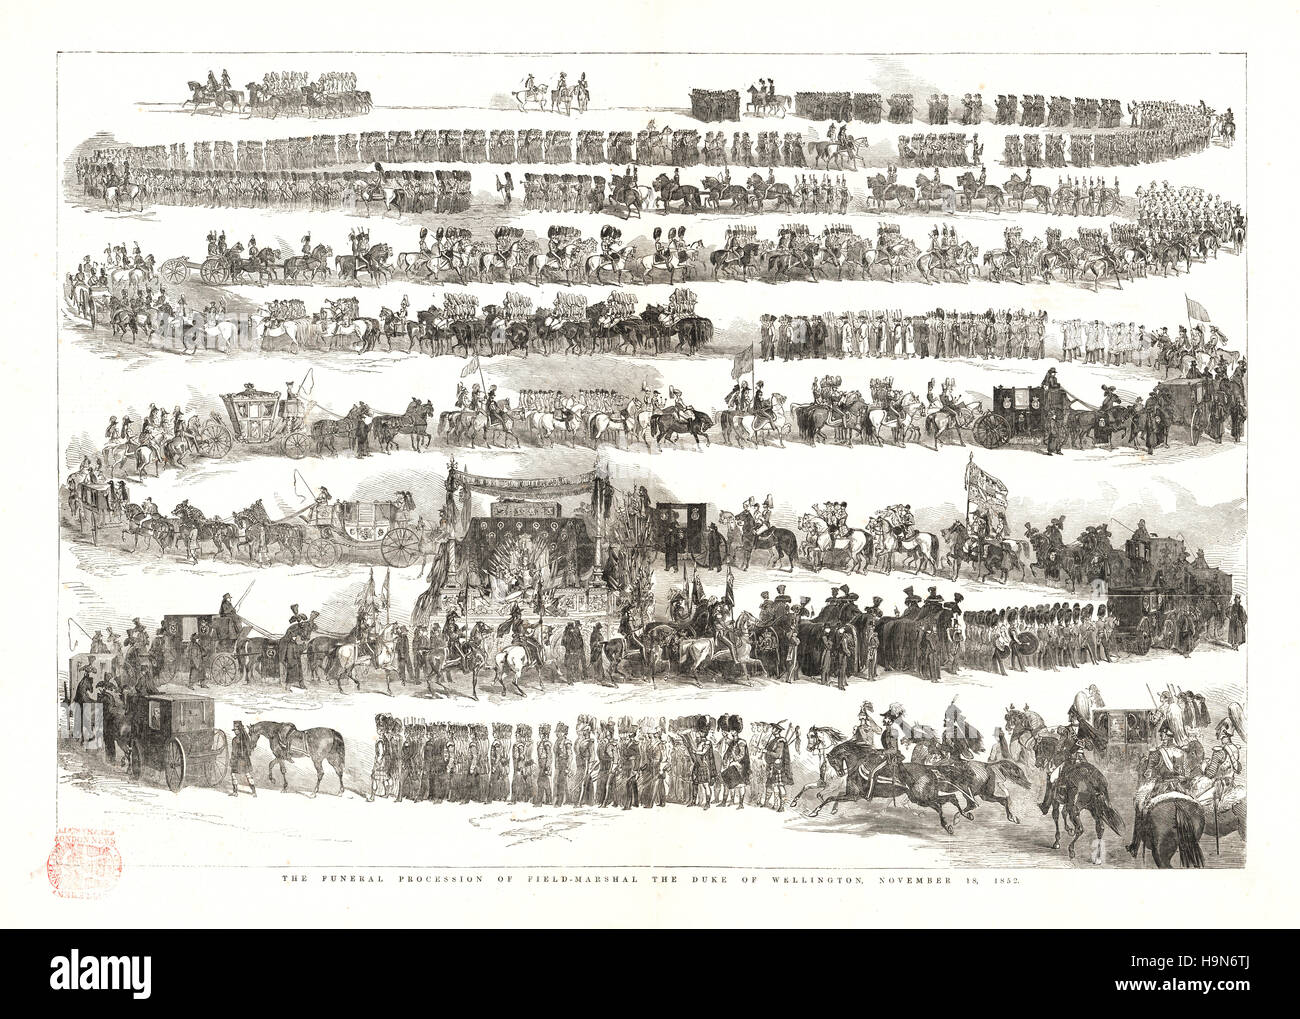 1853 Illustrated London News Funeral of the Duke of Wellington - Stock Image